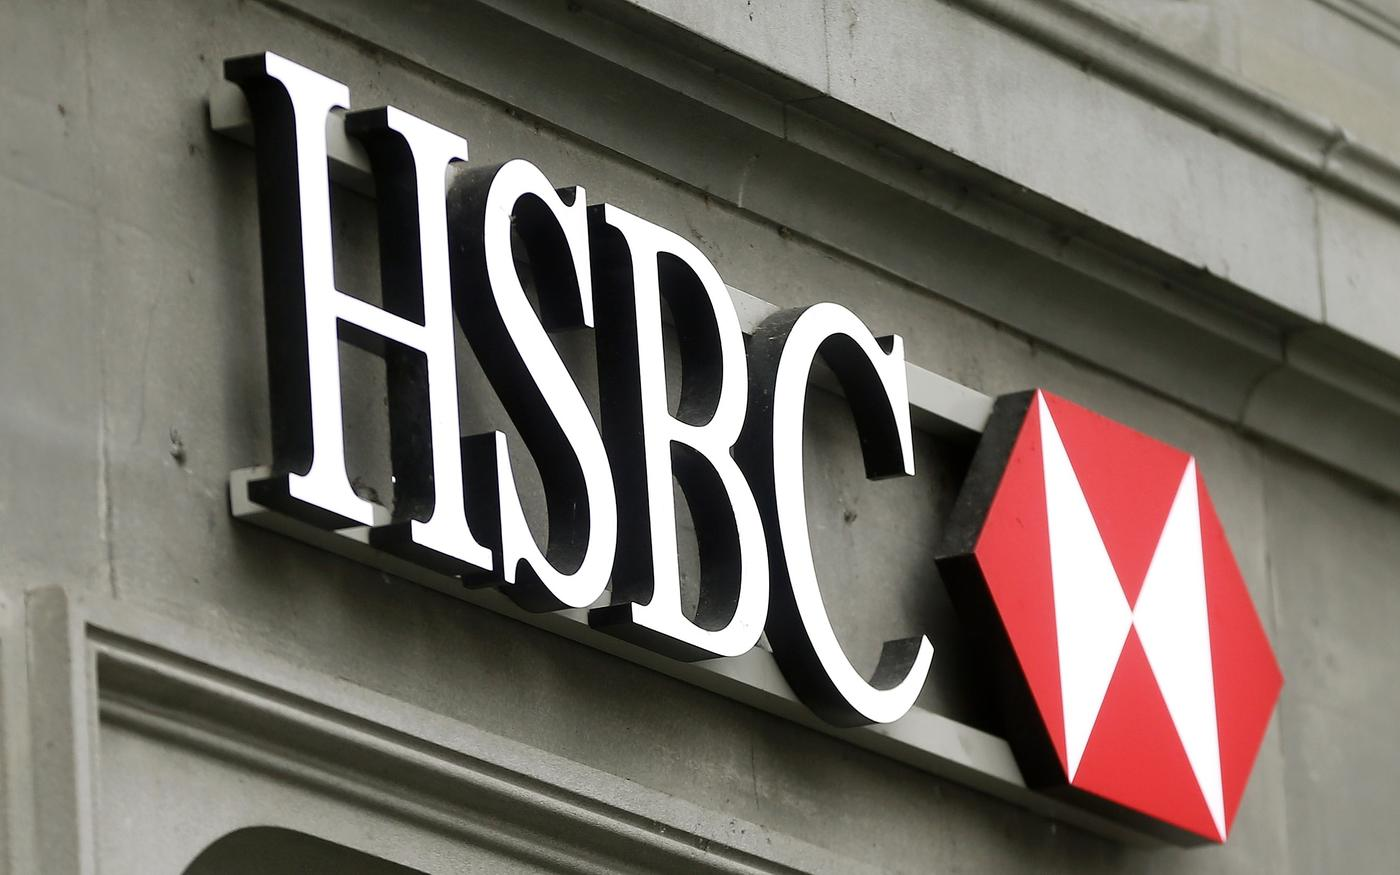 HSBC 'helped clients avoid paying millions in tax'